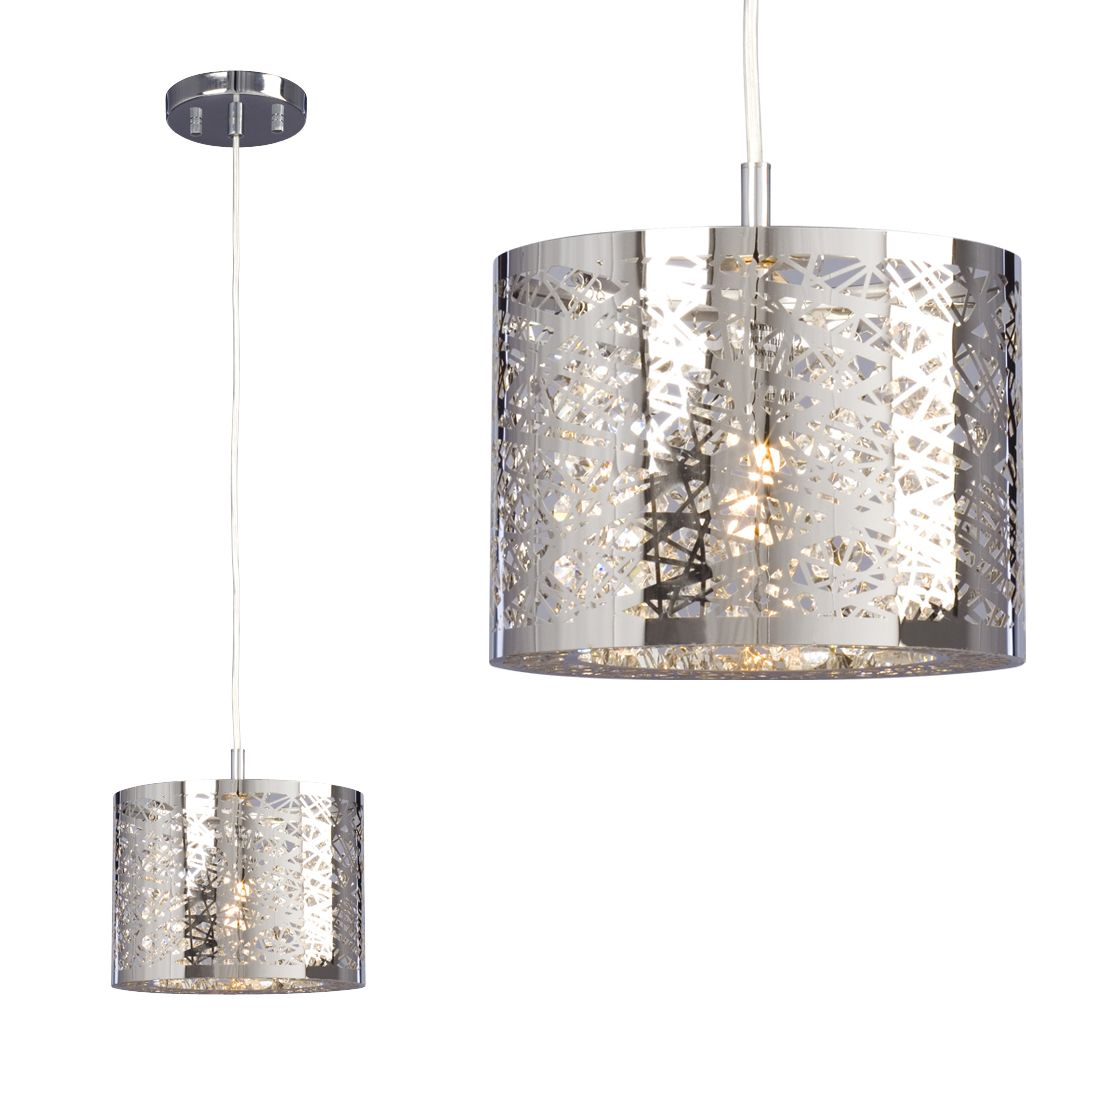 Kitchen Pendant Lights Canada: Galaxy Lighting 914784CH Venta Mini Pendant At Lowe's Canada-kitchen Island Option